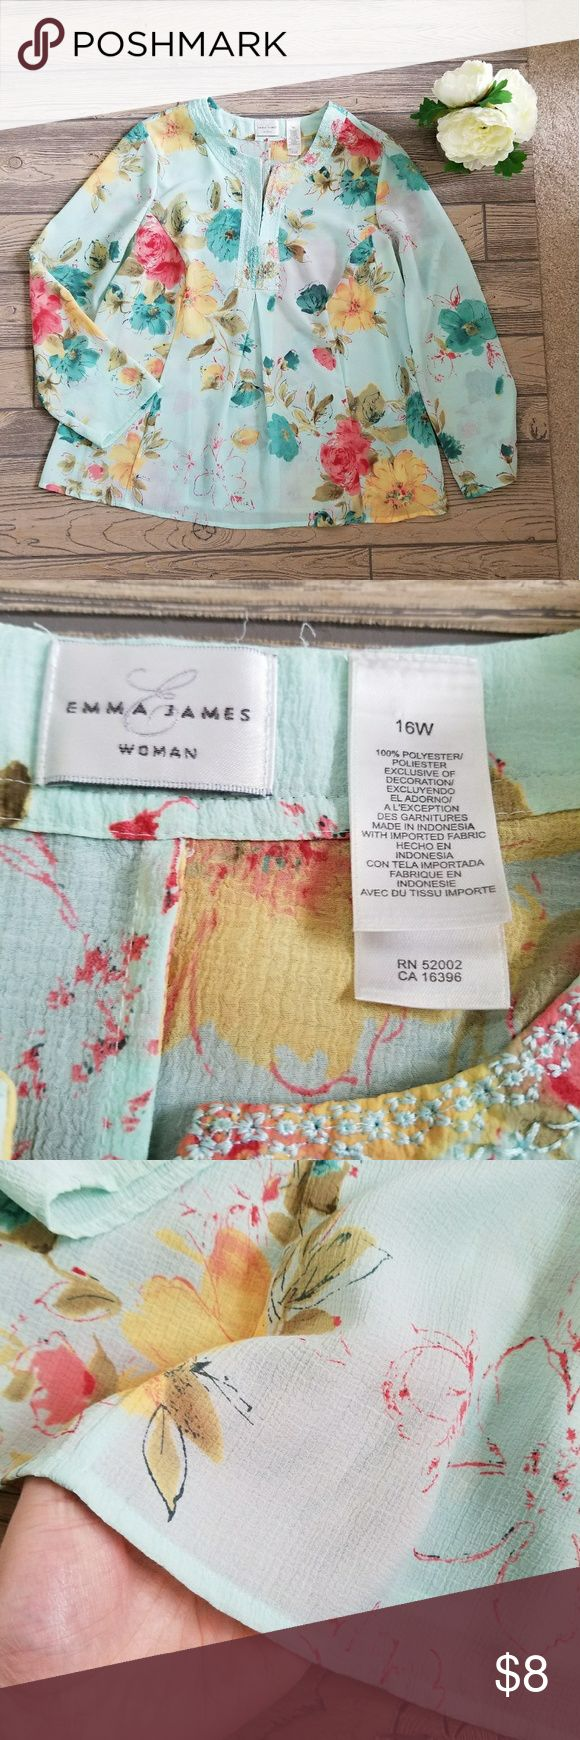 """Emma James Blue Floral Sheer Tunic Top Sz 16W Women's pre-owned Emma James light blue floral print tunic top. Long sleeves, embroidery around the neck. Semi-sheer. Comes to mid-hip length. Size 16W. Excellent pre-owned condition with no holes, tears, or stains.   Underarm to underarm laid flat: 23.5"""" Hip width laid flat: 27"""" Length: 26"""" Emma James Tops Tunics"""